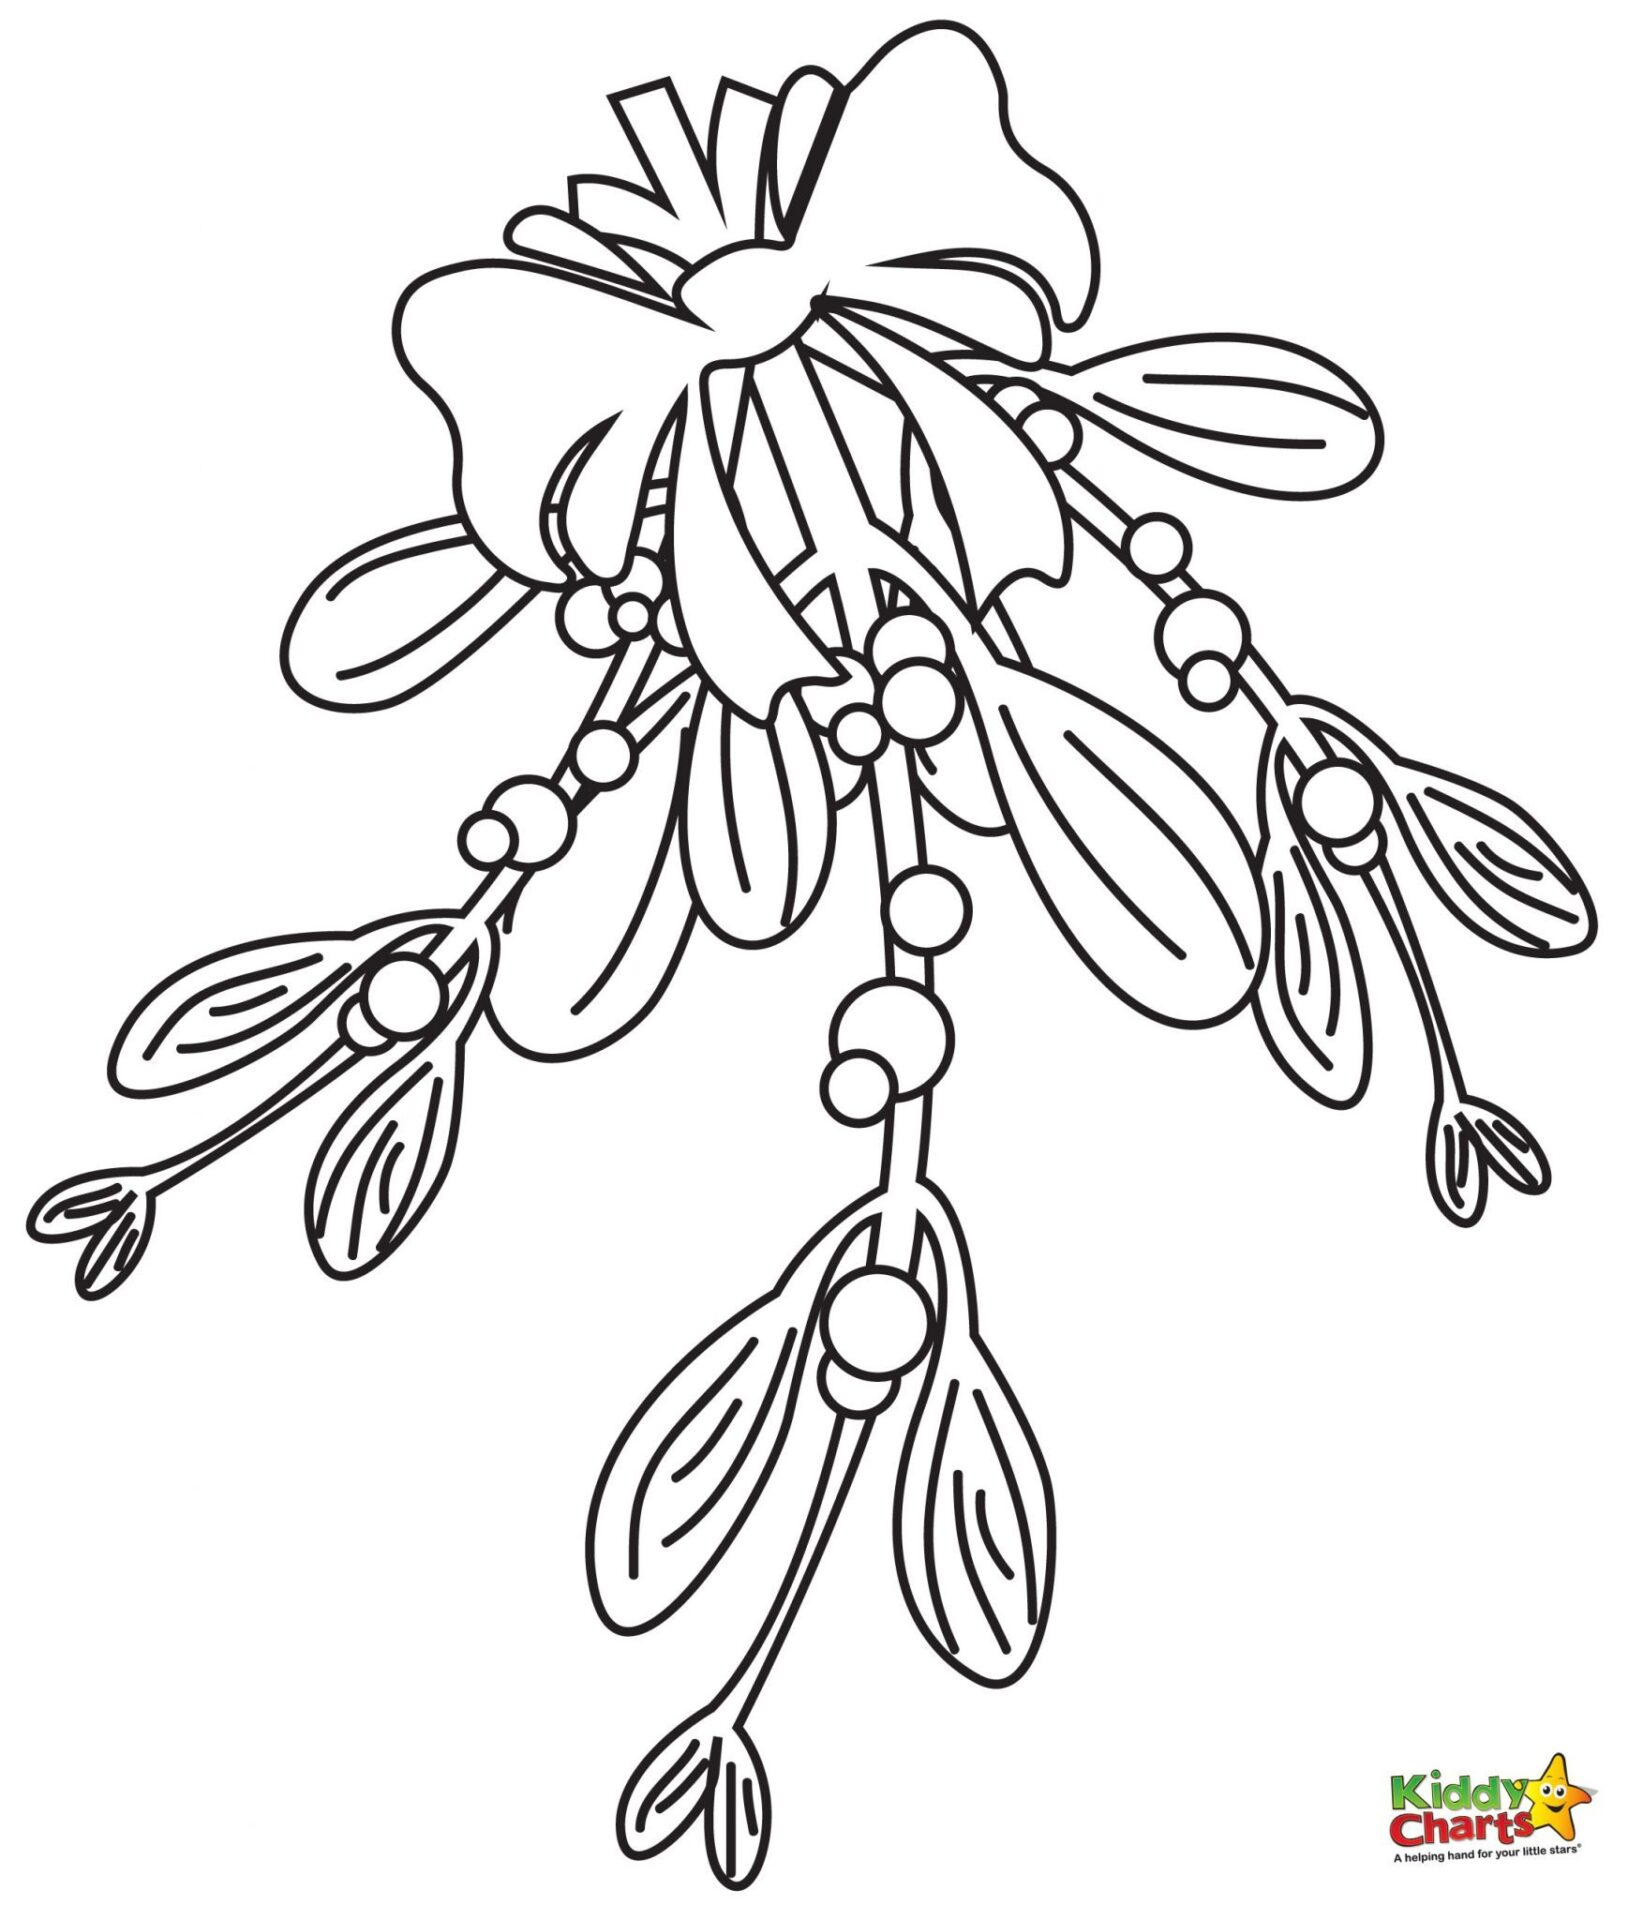 Mistletoe Coloring Page Coloring Pages Mistletoe